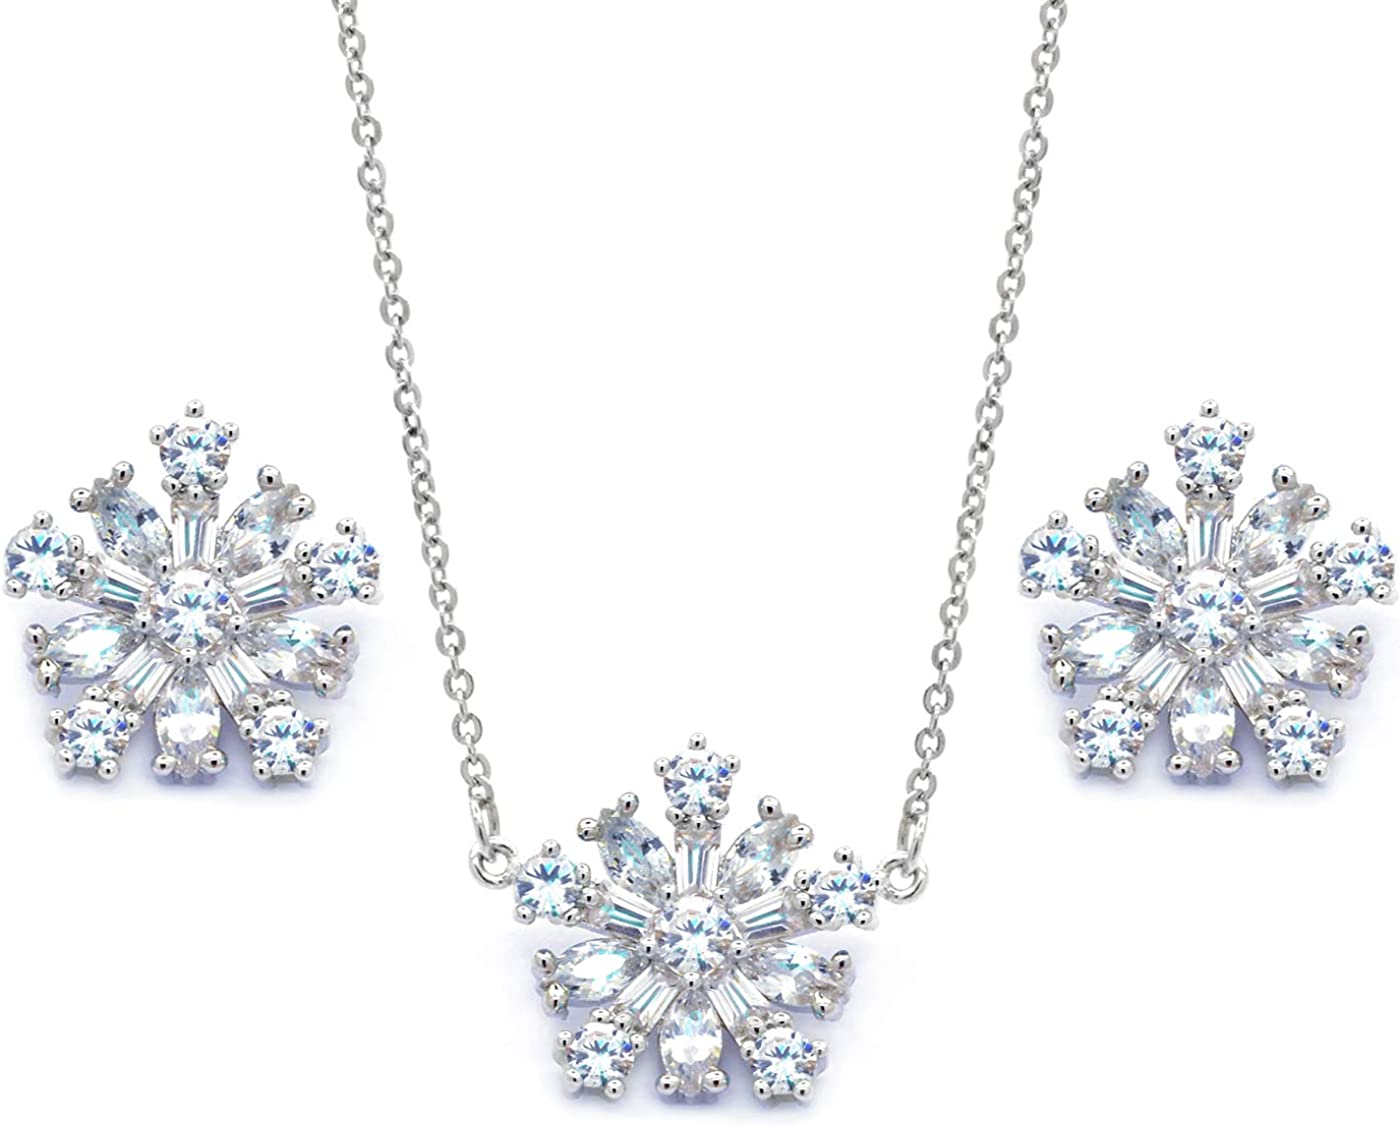 Sparkly Bride Snowflake Jewelry Set Pendant Necklace Matching Stud Earrings CZ Baguette Women Fashion, 16+2in